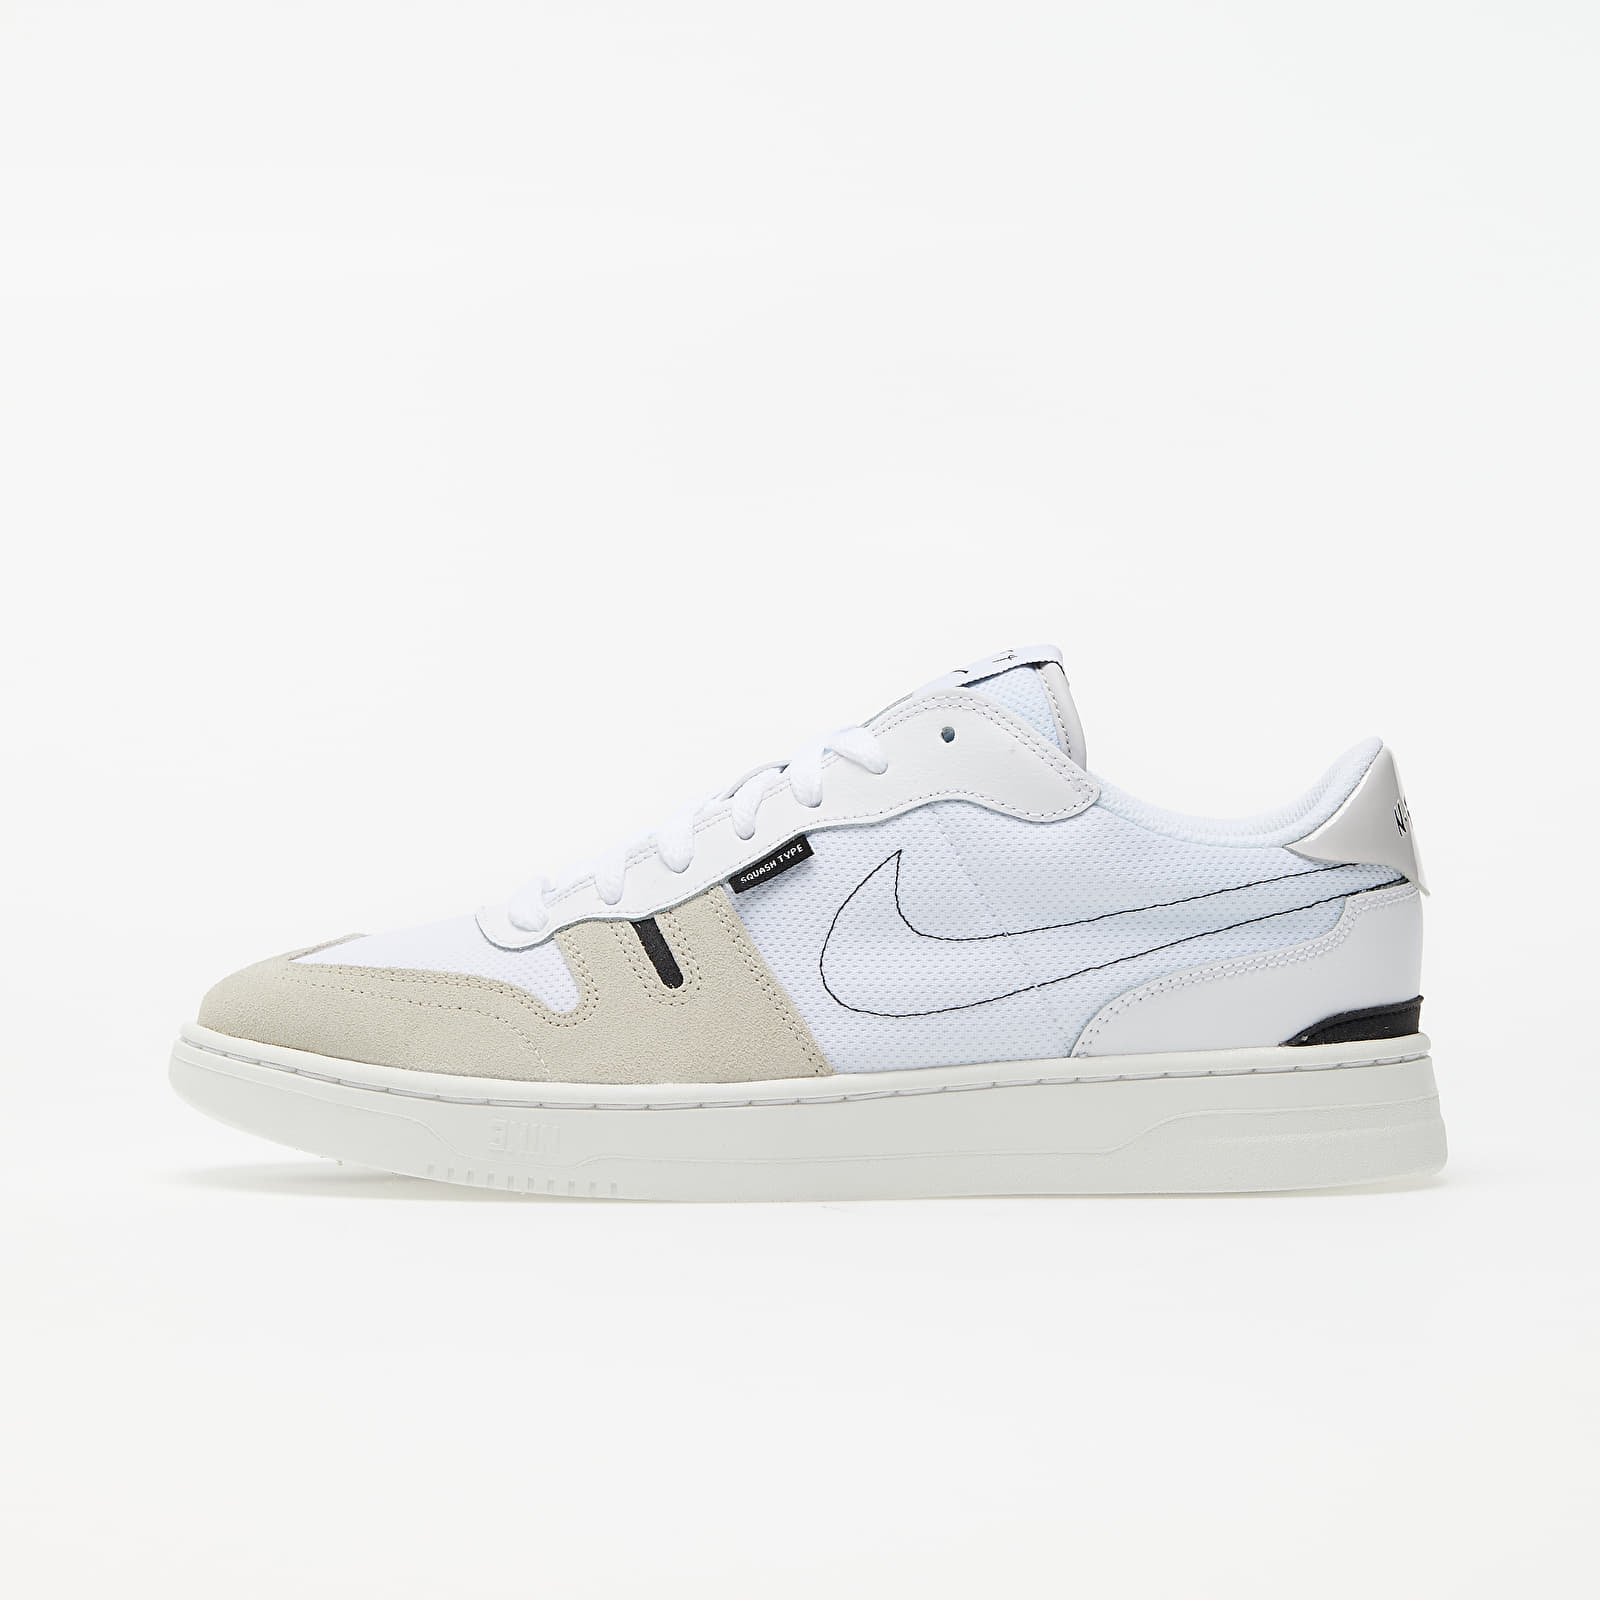 Férfi cipők Nike Squash-Type Summit White/ White-Black-Vast Grey